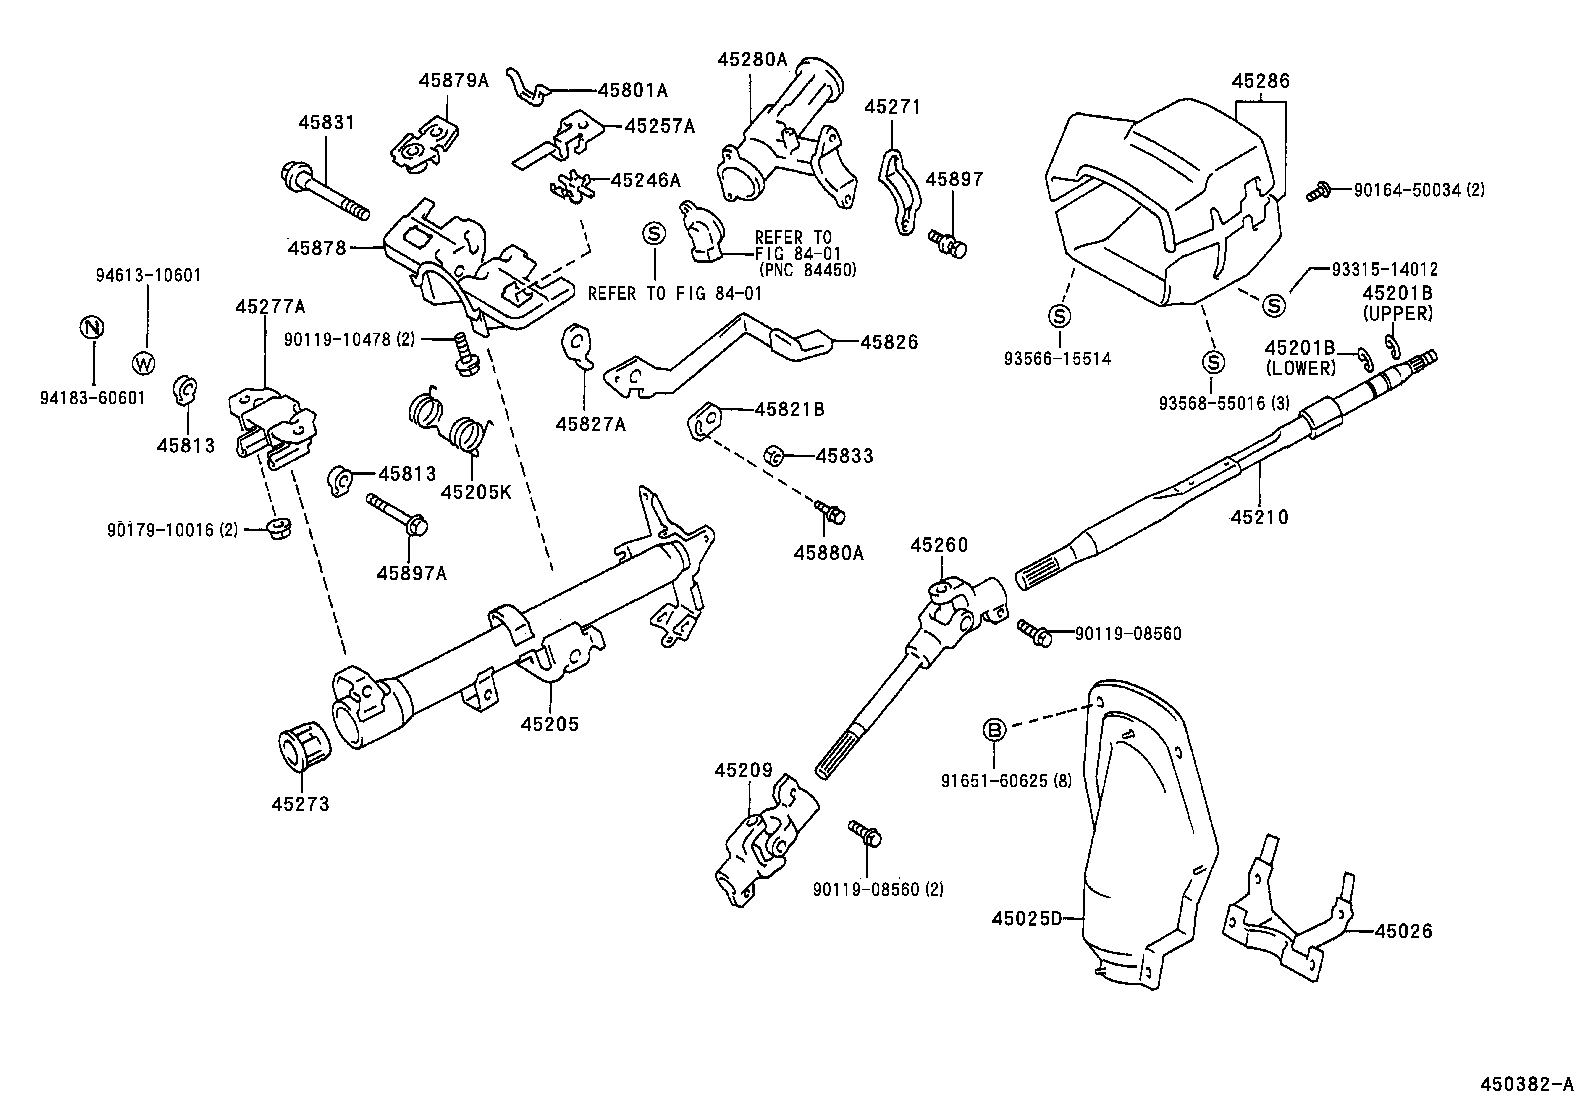 2jea5 96 Thunderbird Evap Control Valve Assembly Egr Valve together with Vacuum moreover 53umx Toyota Sienna Xle Need Diagram Hoses Pipes Around besides Chevrolet Malibu 2007 Kit Cadena De Tiempo furthermore RearWindow. on toyota rav4 engine diagram